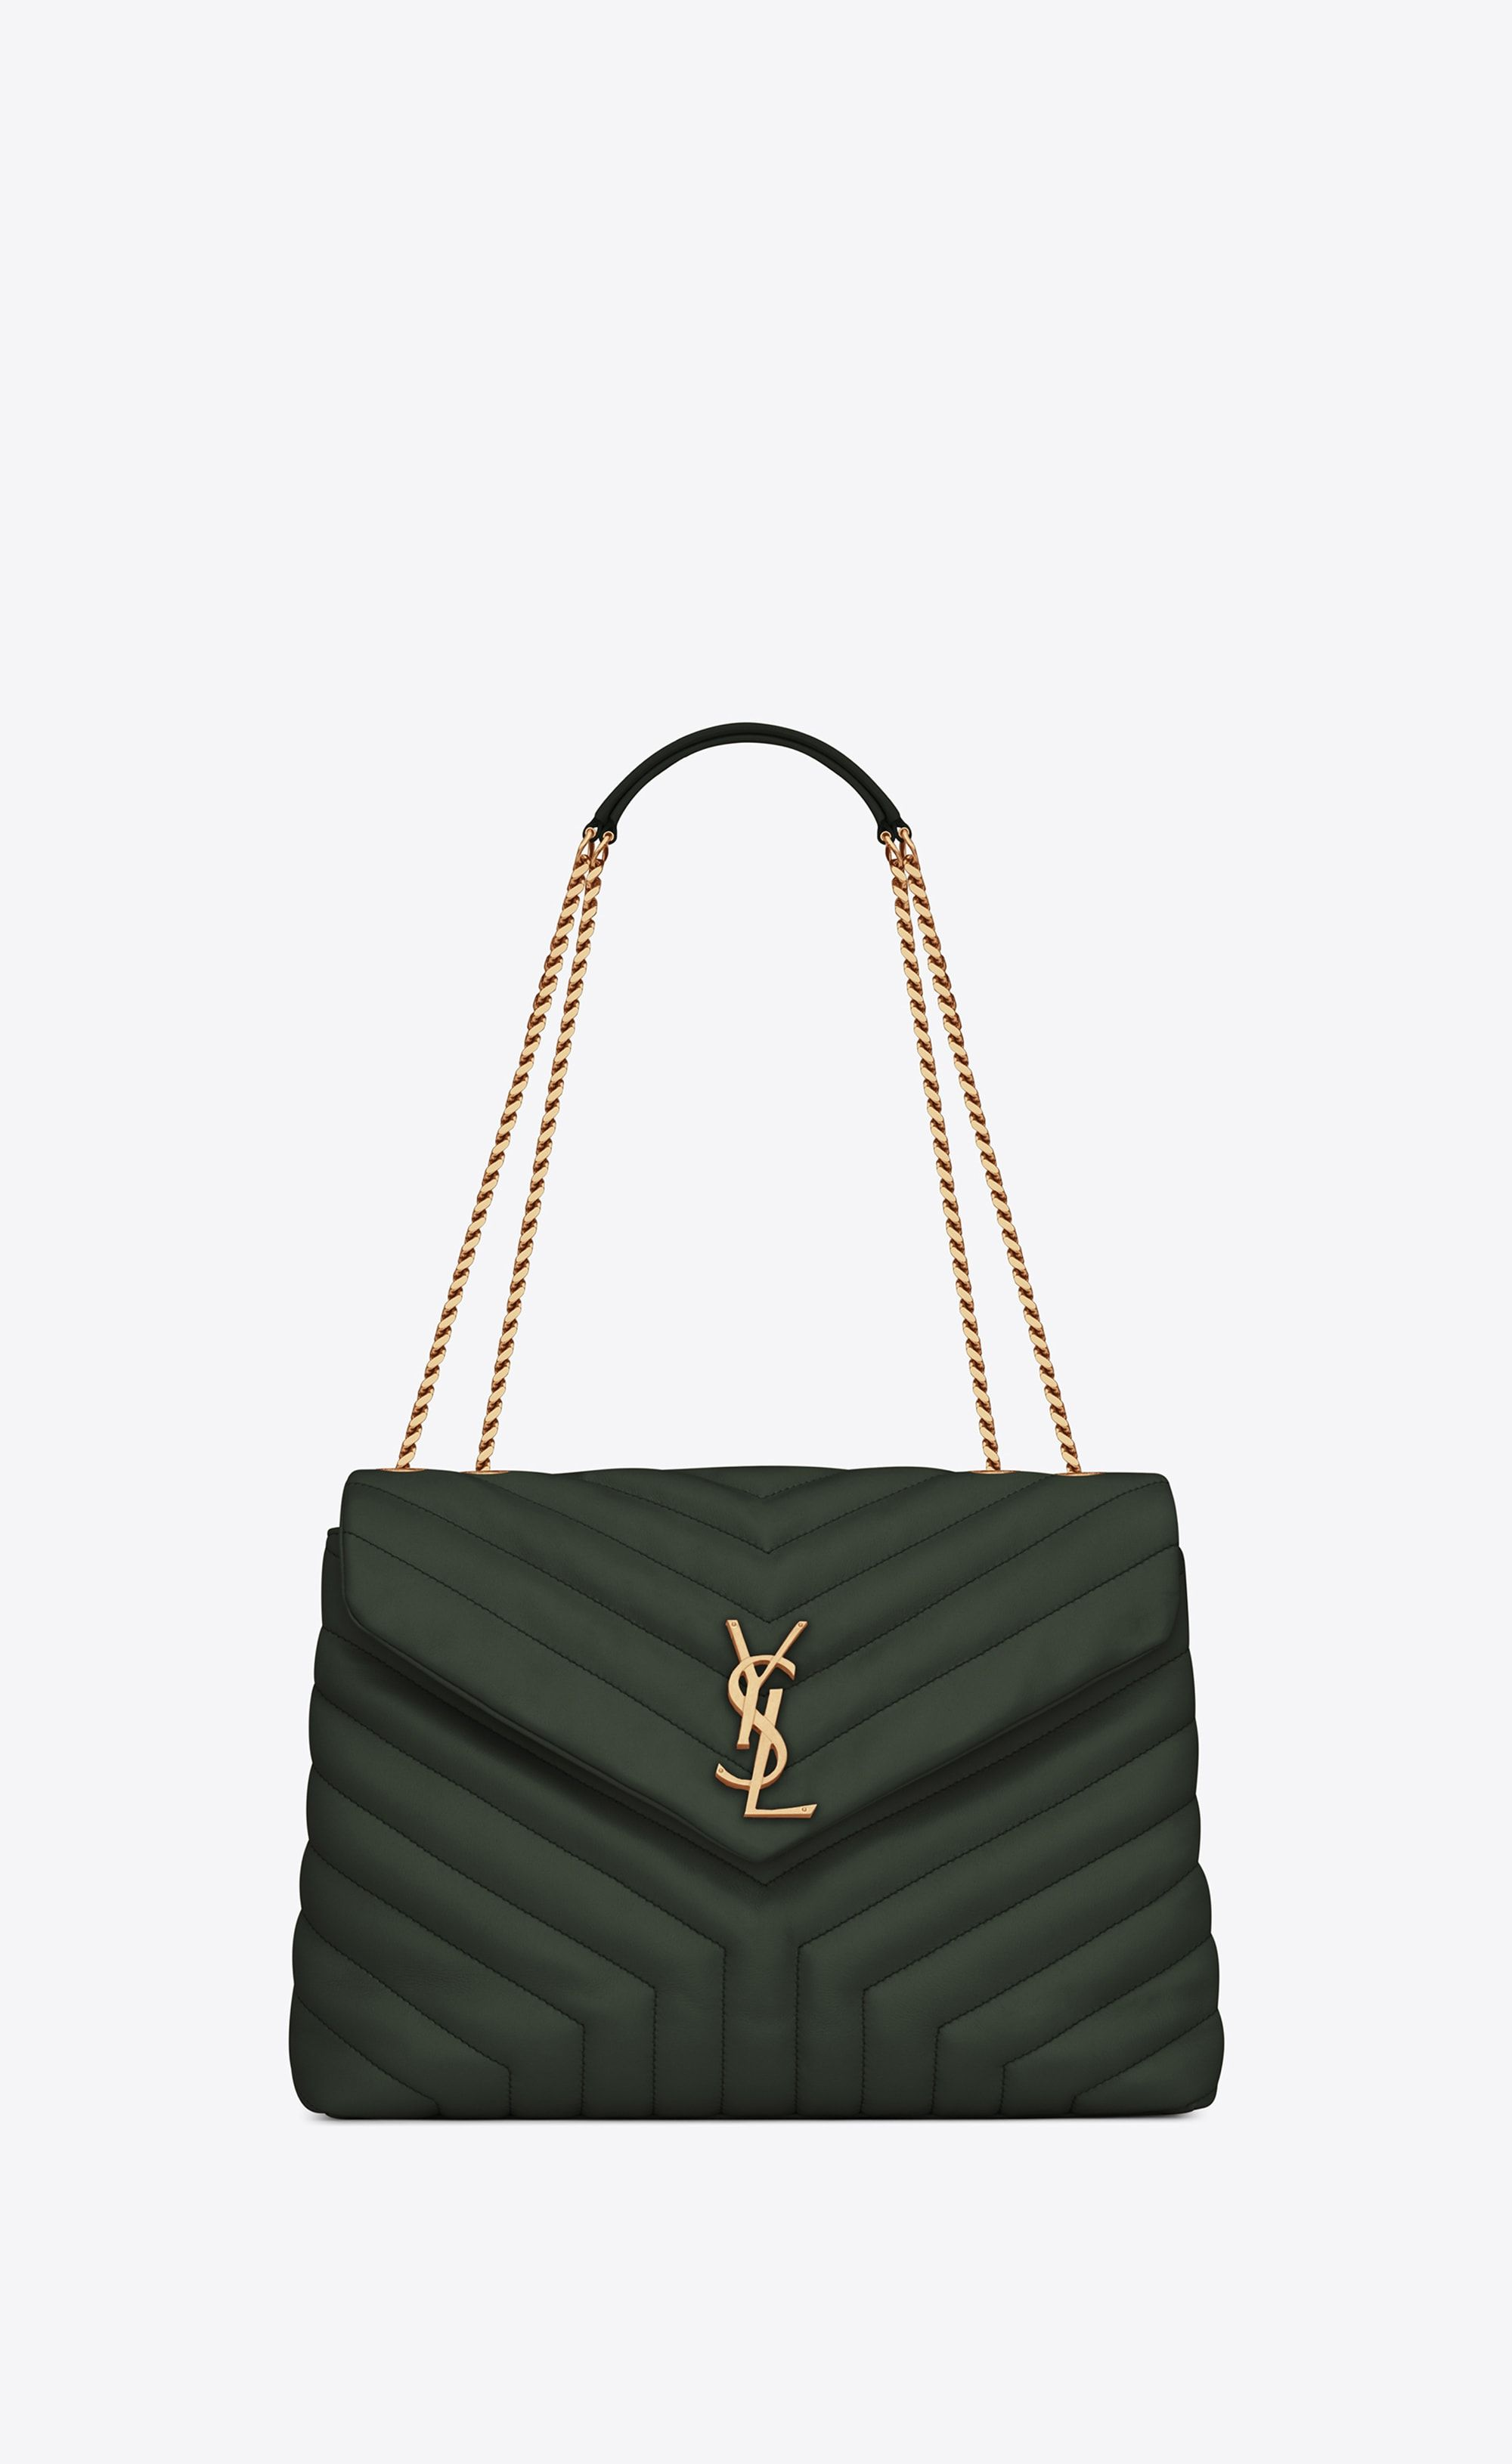 "Saint Laurent Medium Loulou Chain Bag In ""Y"" Quilted Dark Green Leather    YSL.com e38cdc6028"